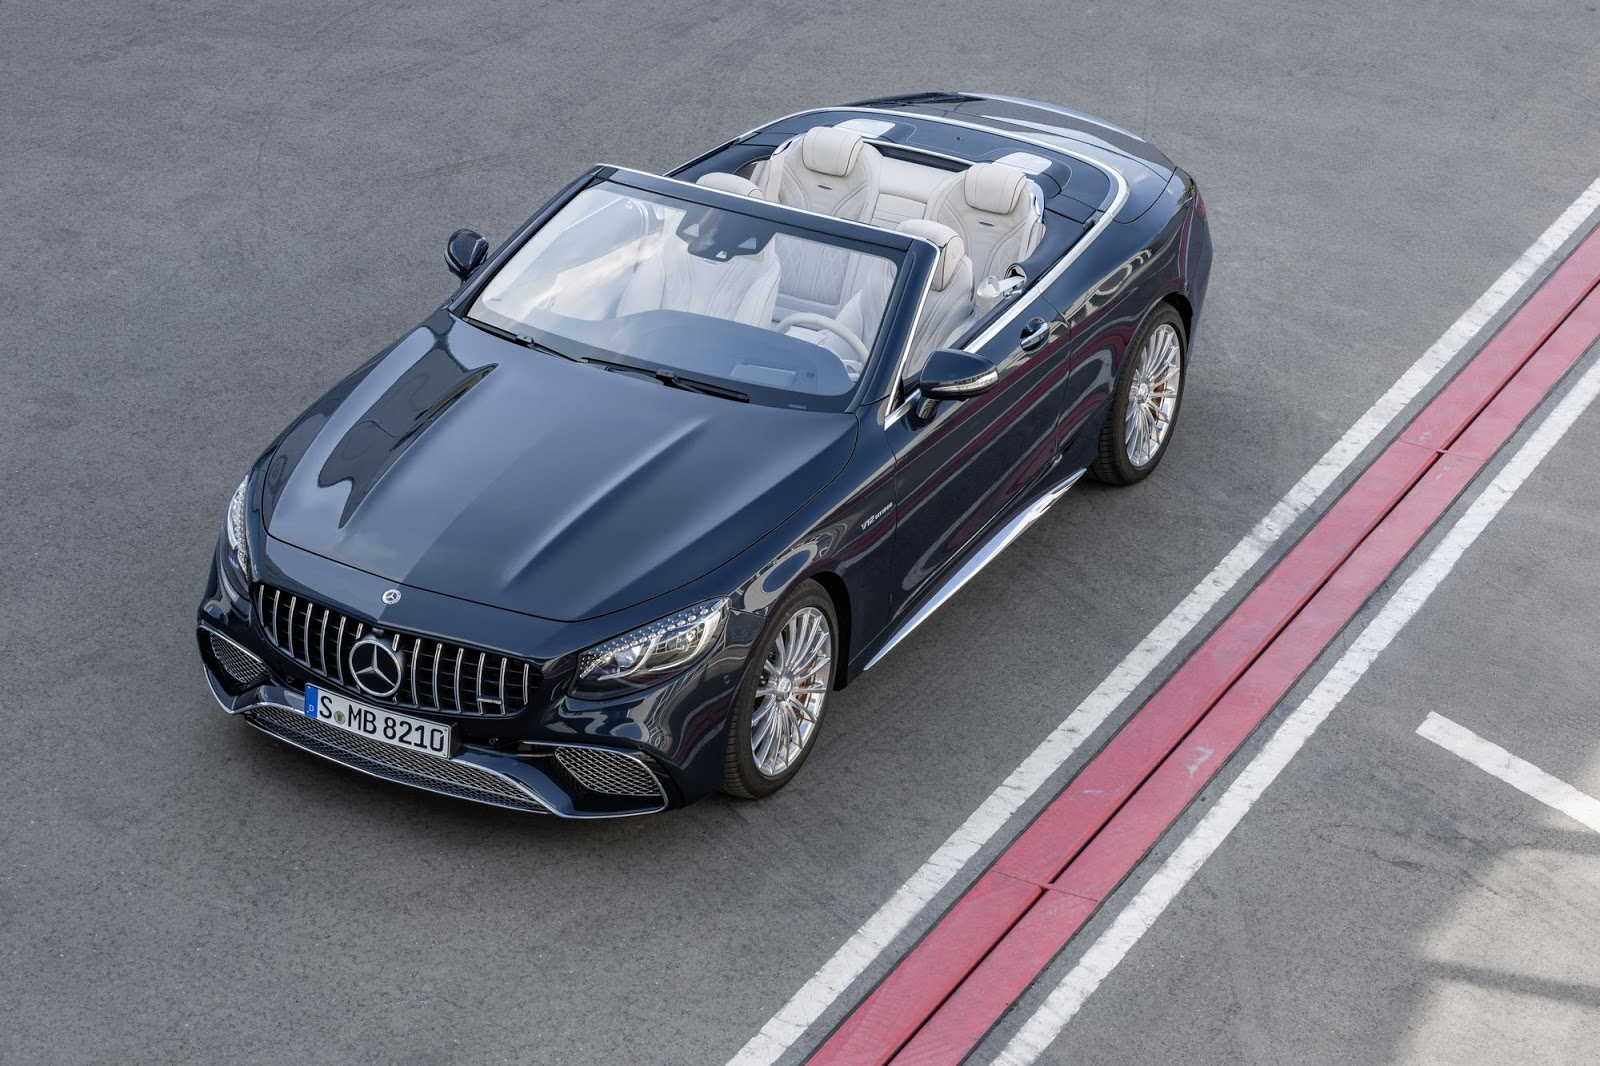 Mercedes-AMG S 65 Cabriolet, 2017. Exterieur: anthrazitblau metallic;Kraftstoffverbrauch kombiniert: 12,0 l/100 km; CO2-Emissionen kombiniert: 272 g/km*